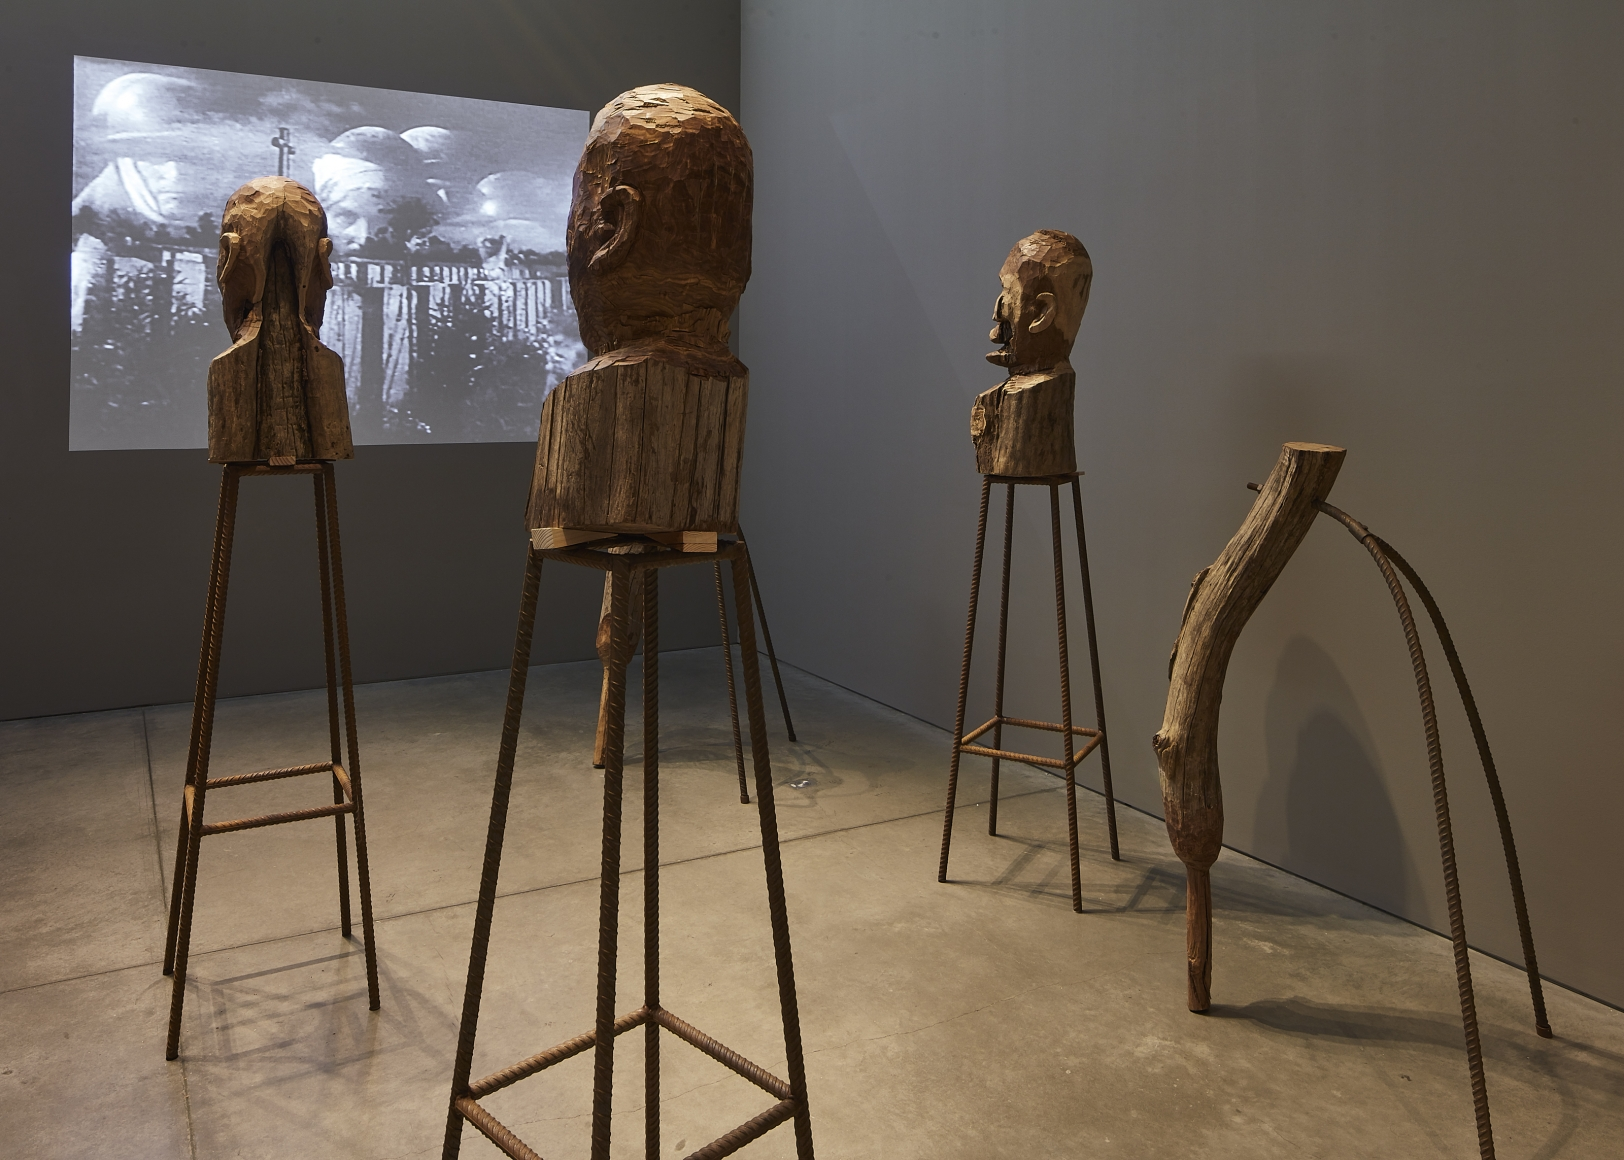 Kader Attia / MATRIX 274 Installation View 7.